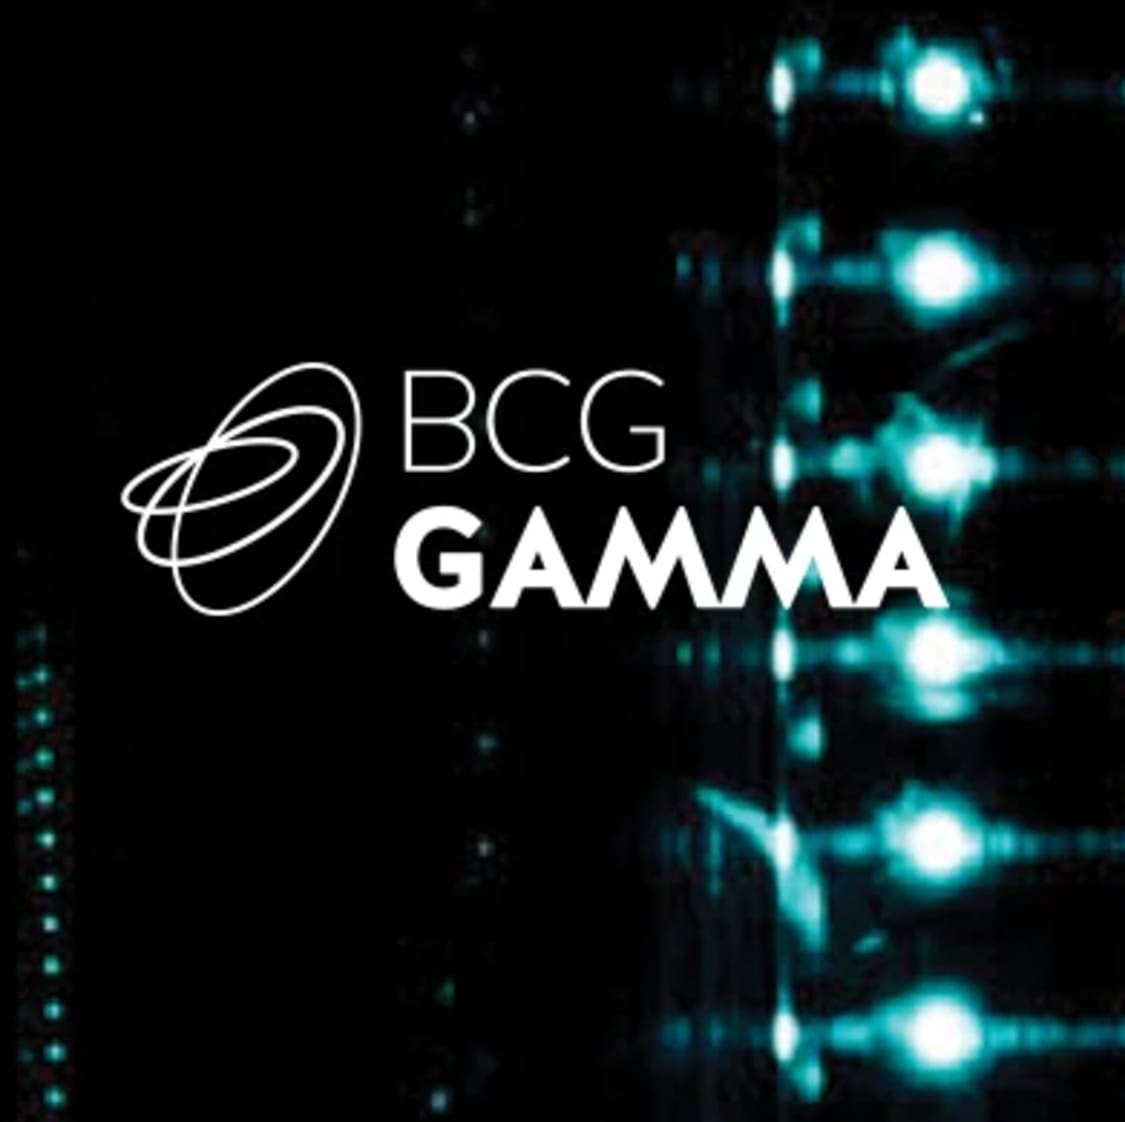 BCG GAMMA - Advanced Analytics & Data Science Consulting